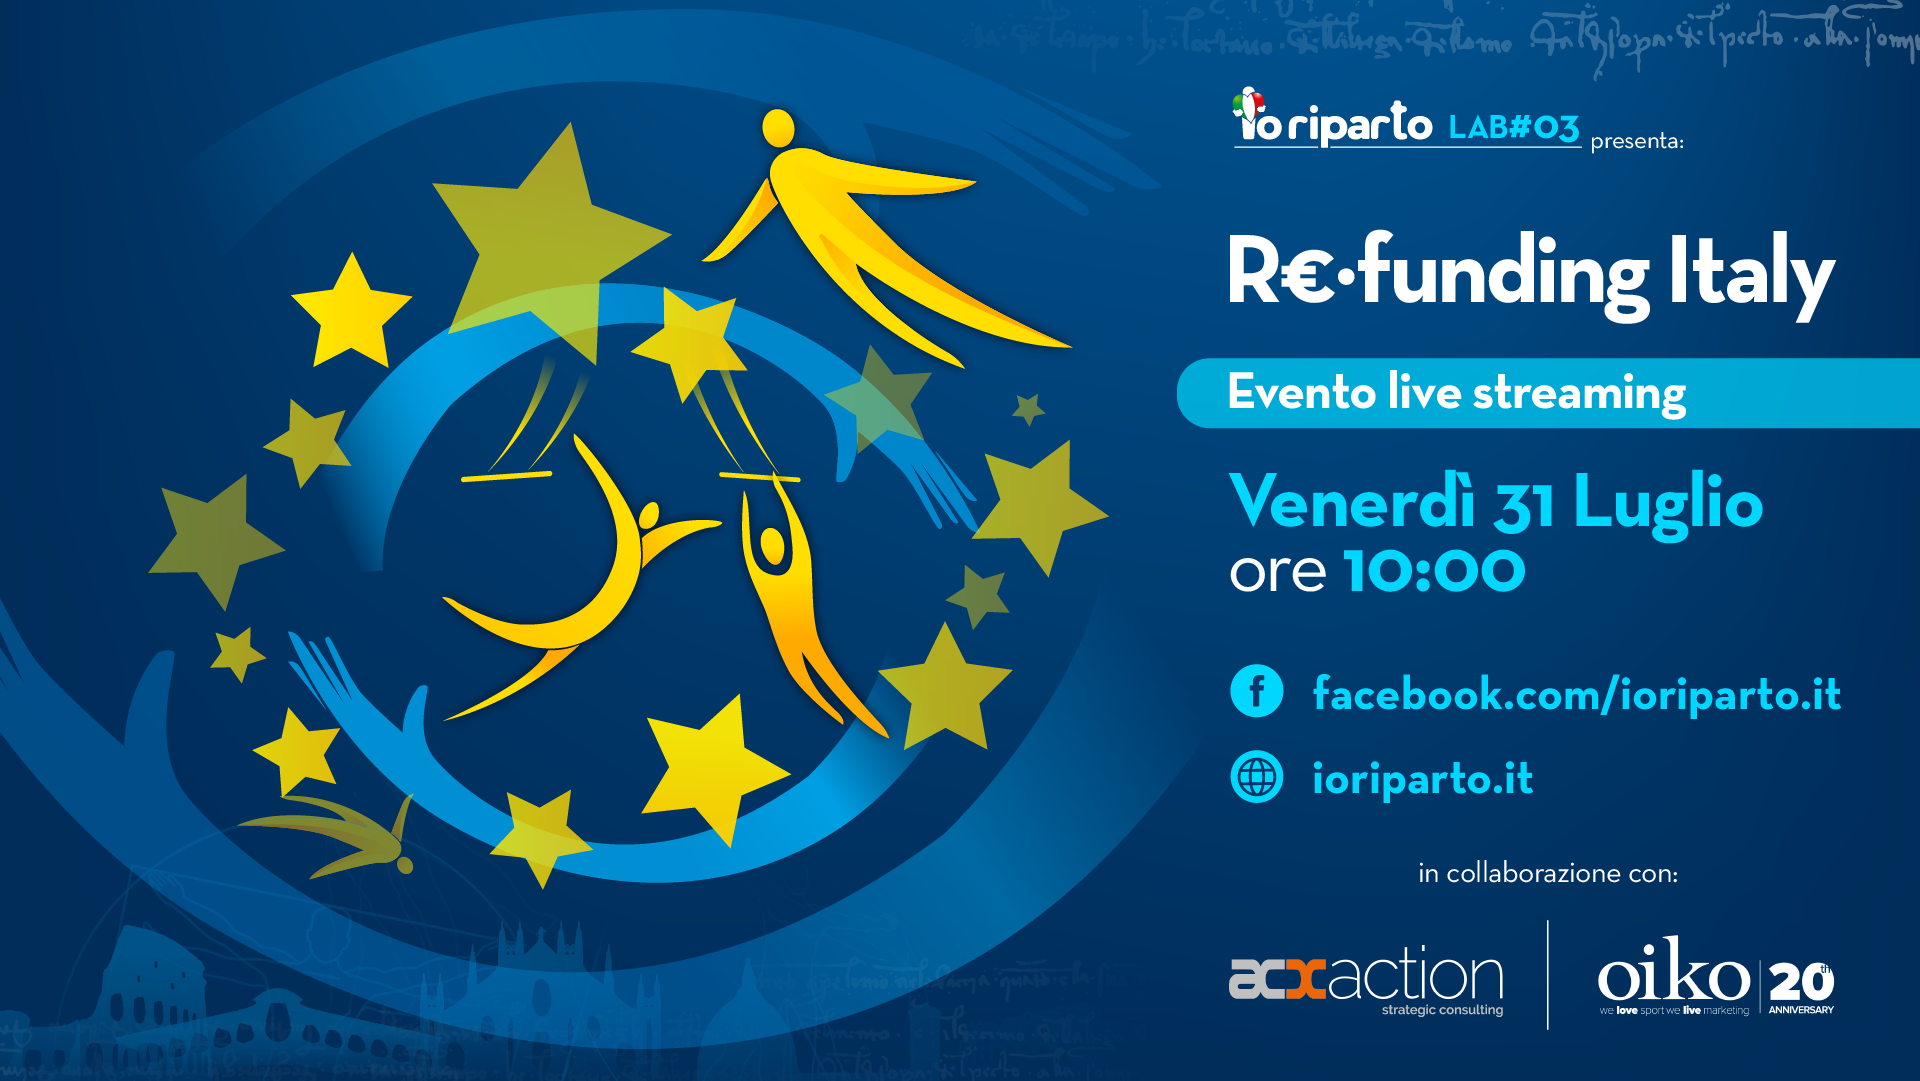 Io Riparto #03 Re-funding Italy – Programma evento